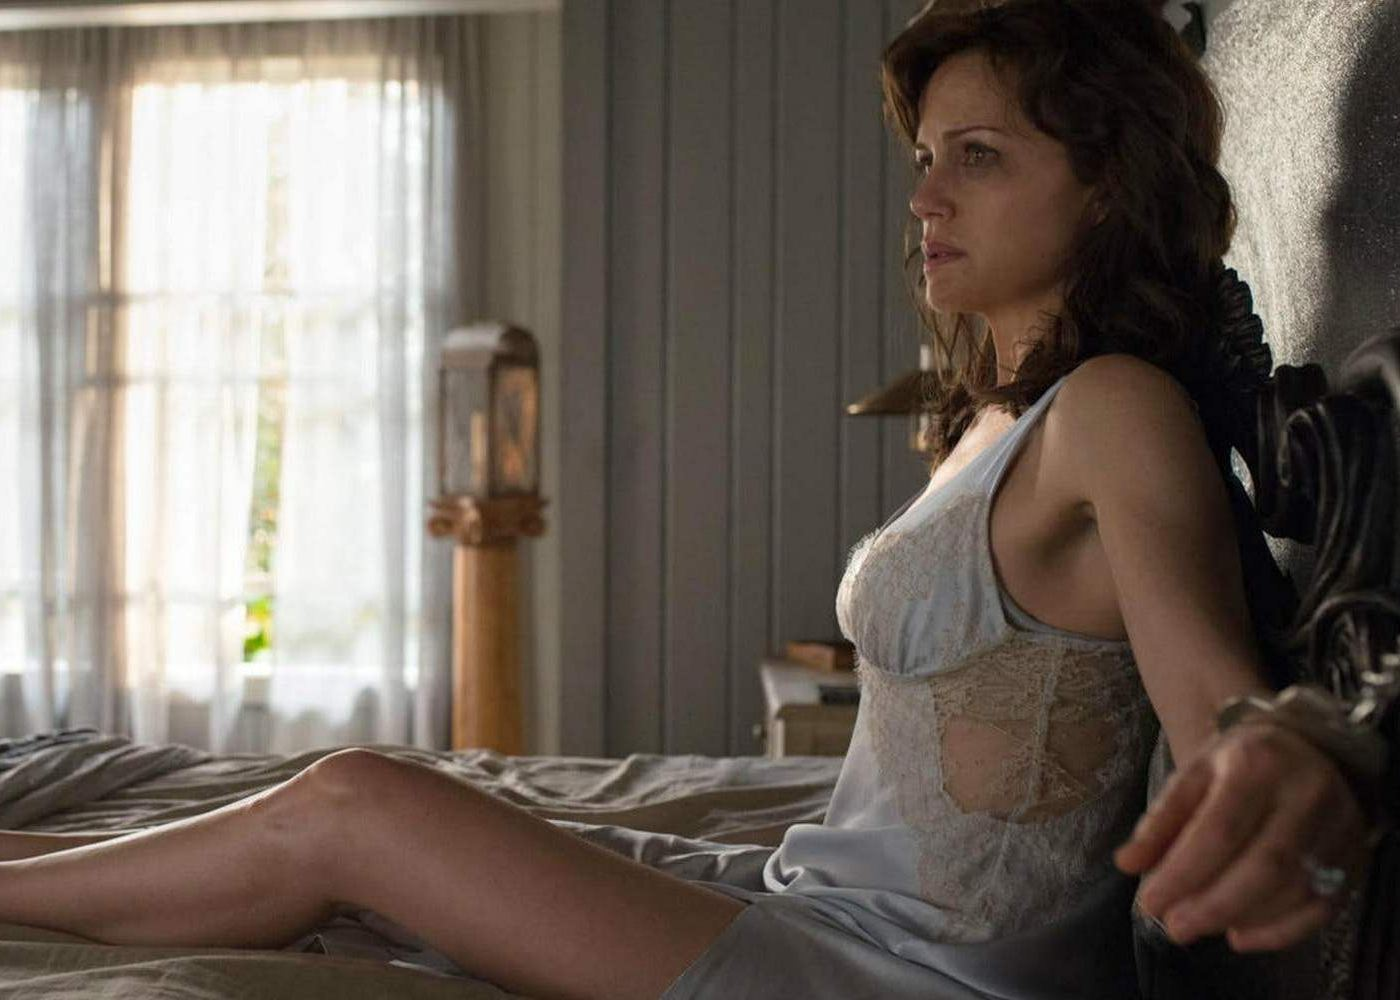 New Trailer for Stephen King's Psychological Thriller Gerald's Game